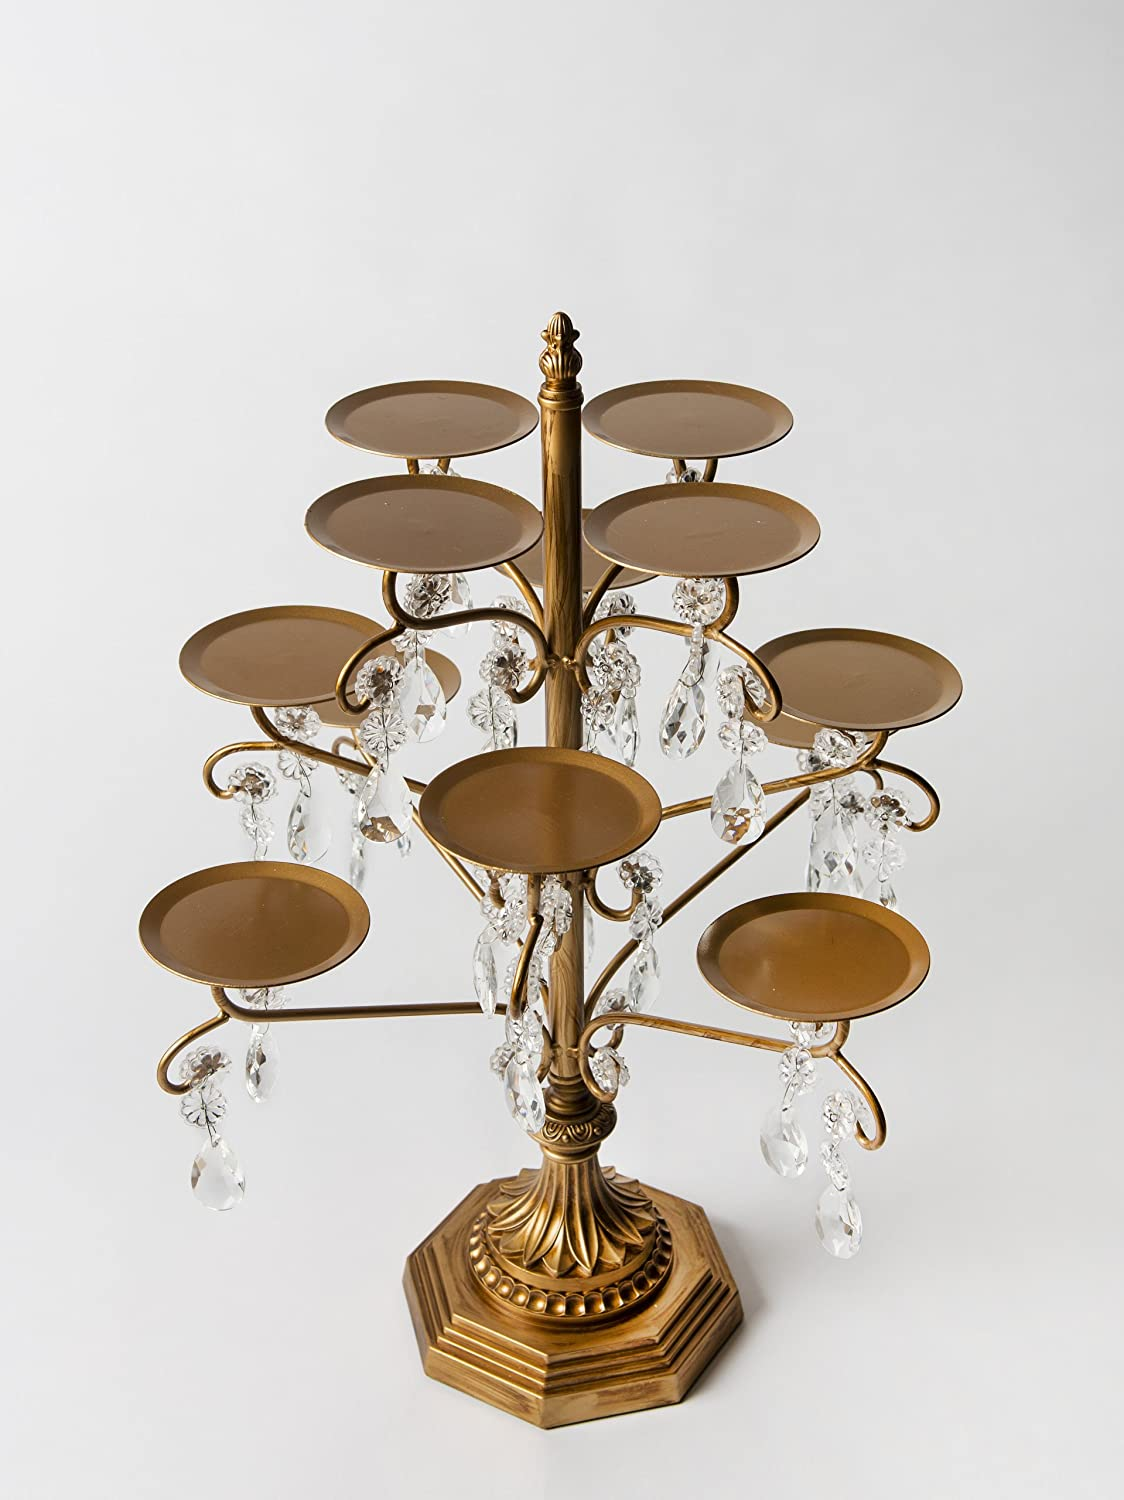 Amazon opulent treasures chandelier 12 piece cupcake candle amazon opulent treasures chandelier 12 piece cupcake candle cake pop mini desserts decorative display holder metal stand antique gold cake arubaitofo Image collections